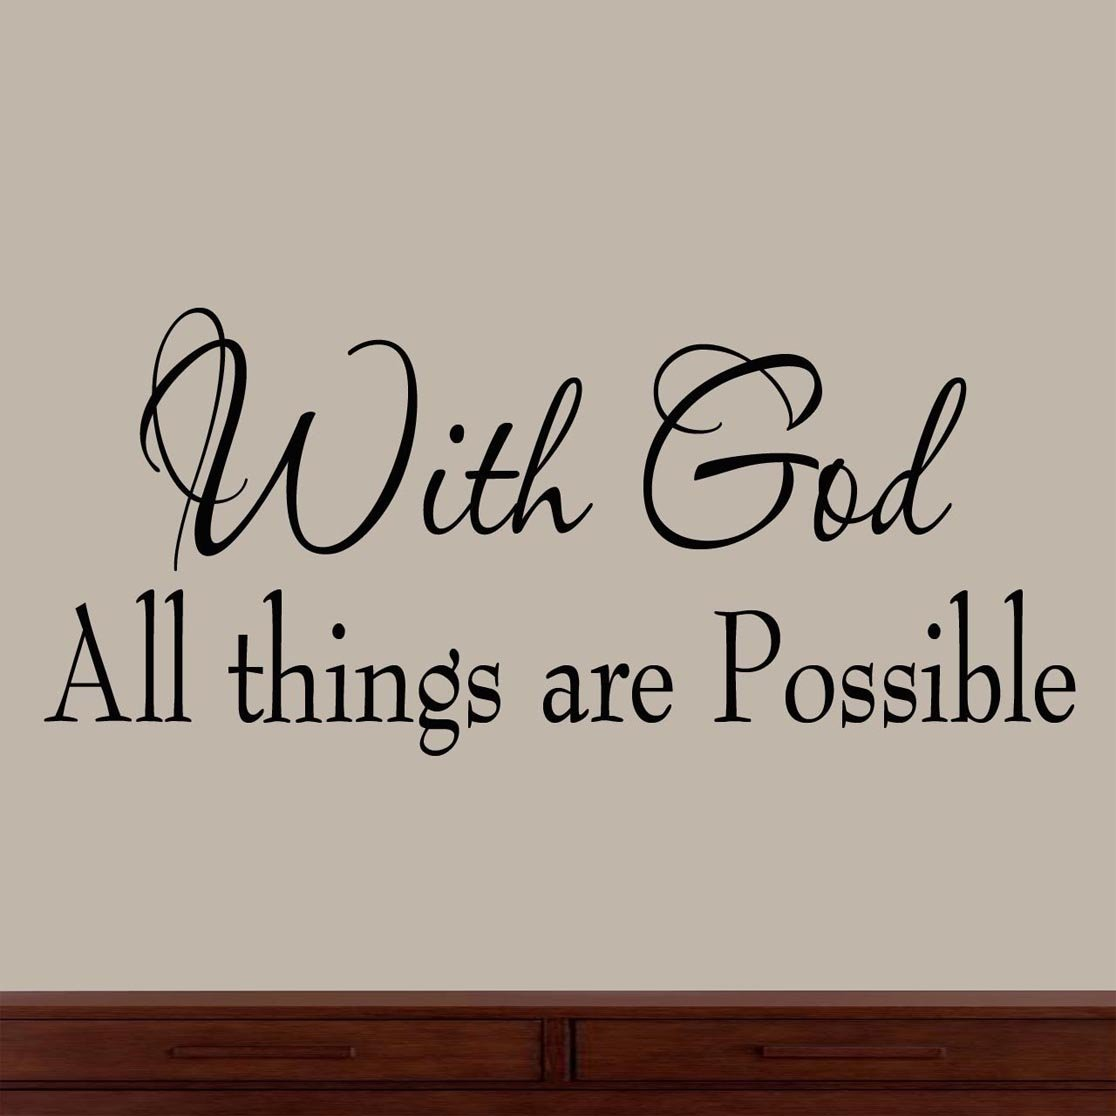 Superb Amazon.com: With God All Things Are Possible Faith Wall Decals Religious  Quotes Family Scripture Home Decor Christian Vinyl Wall Art: Home U0026 Kitchen